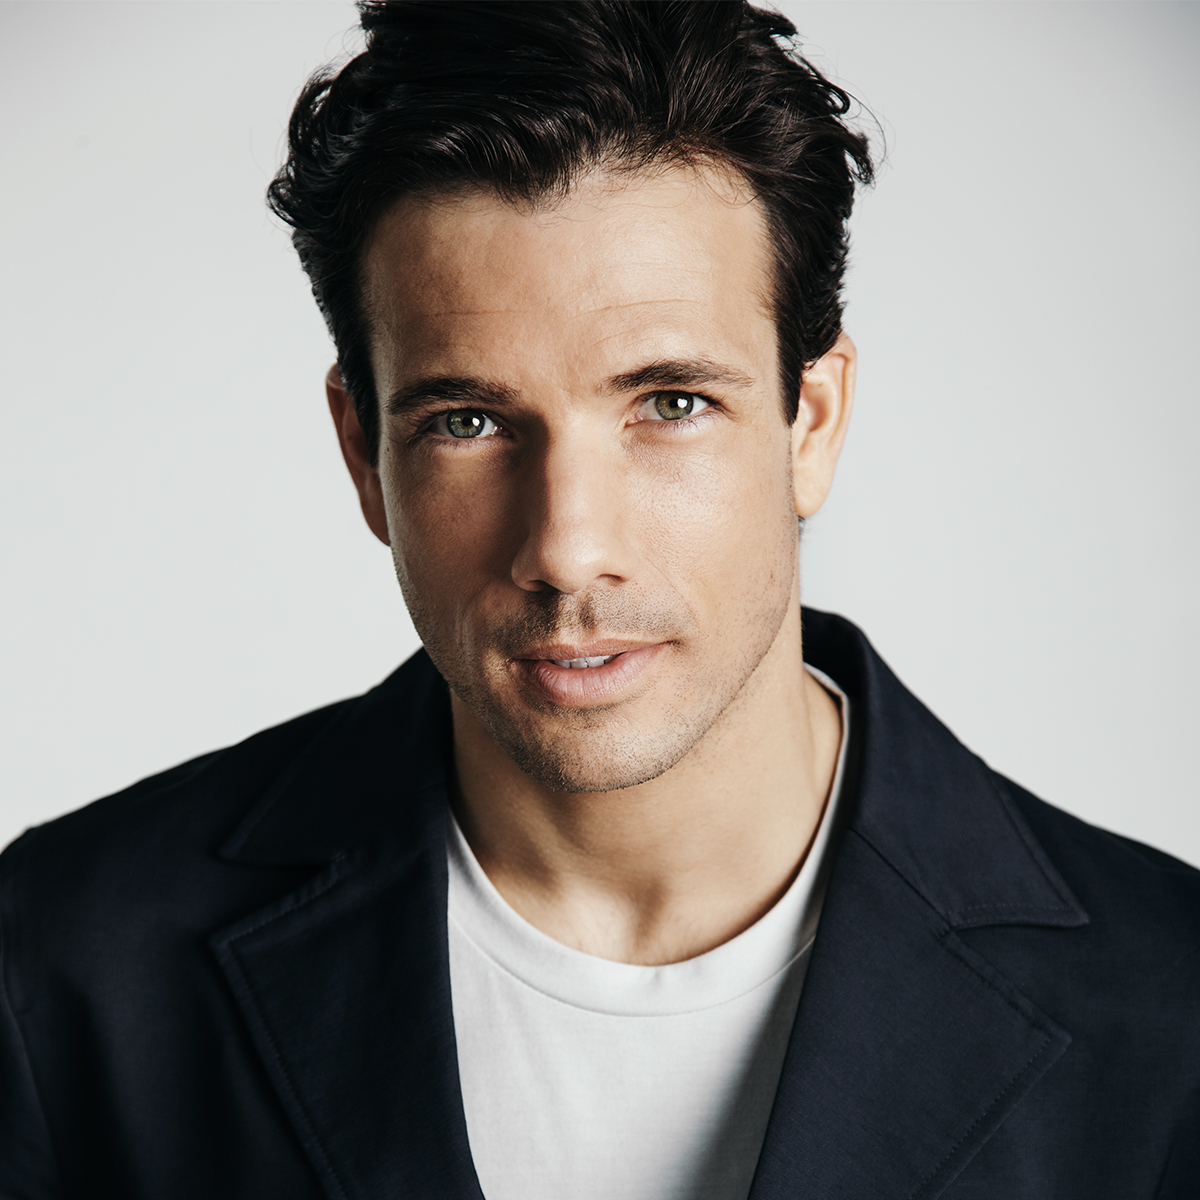 5 Minutes With Danny Mac